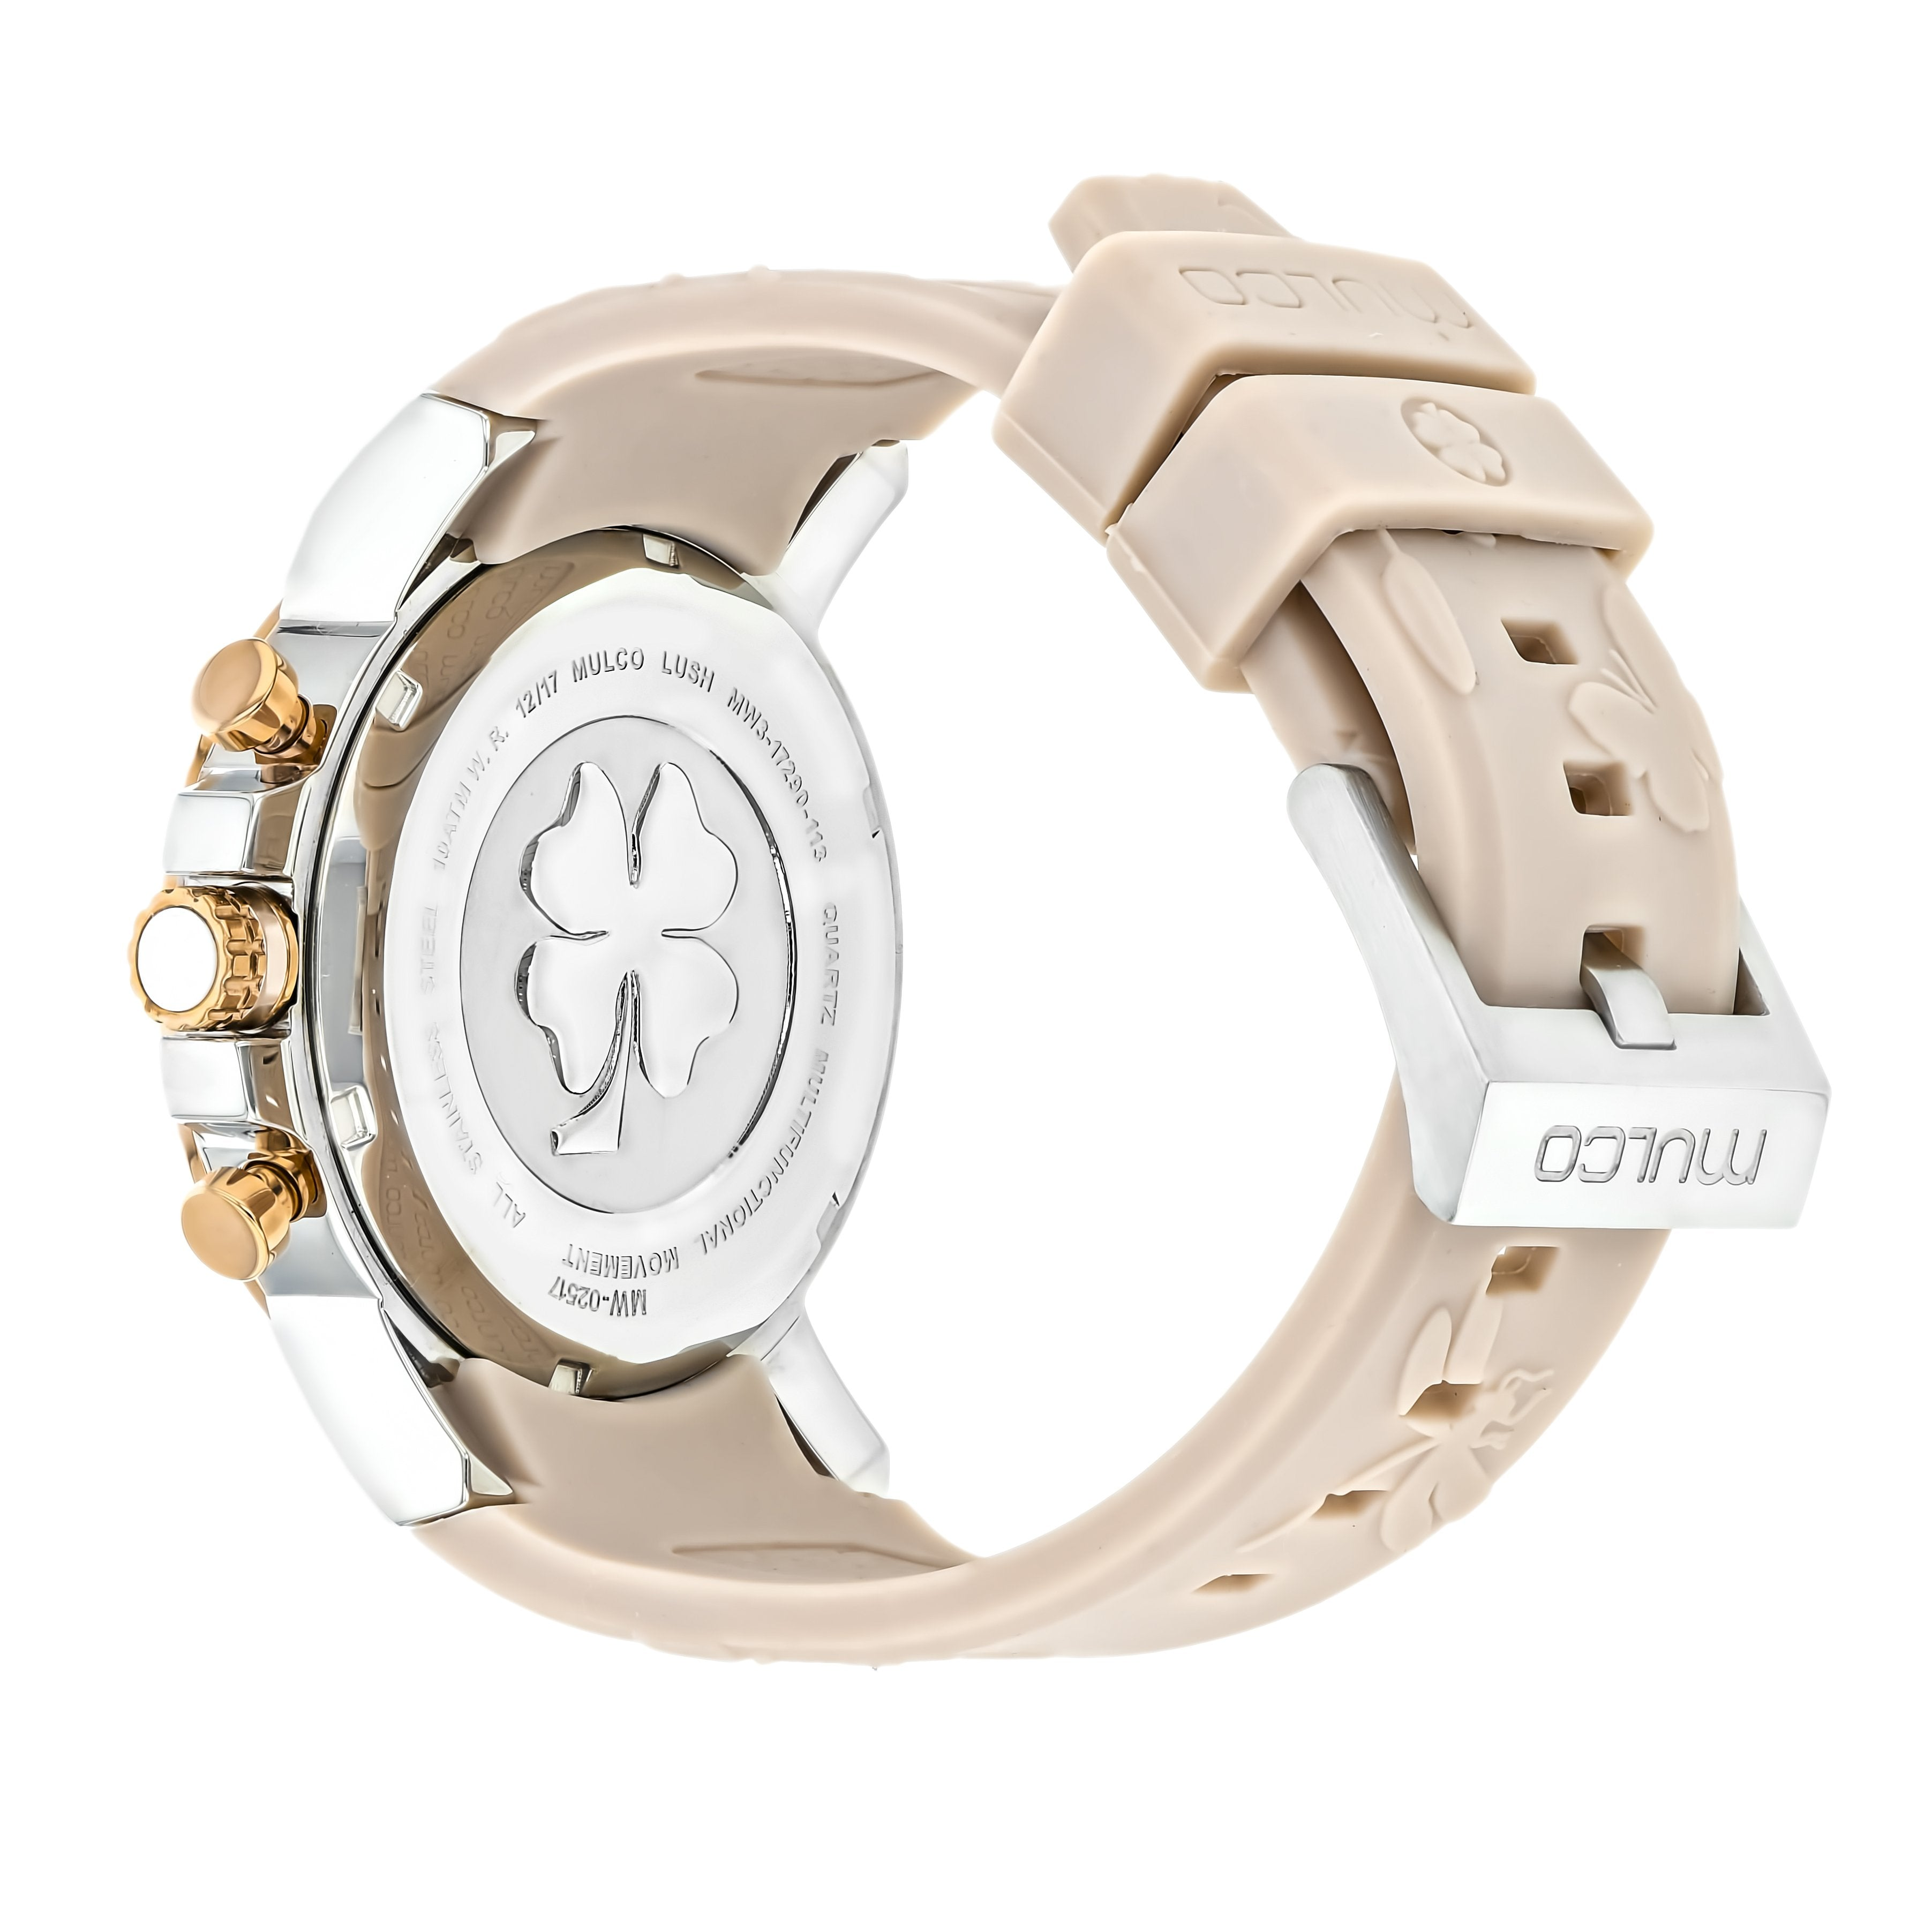 Ladies Watches | Mulco Lush Bee | Beige Silicone Band